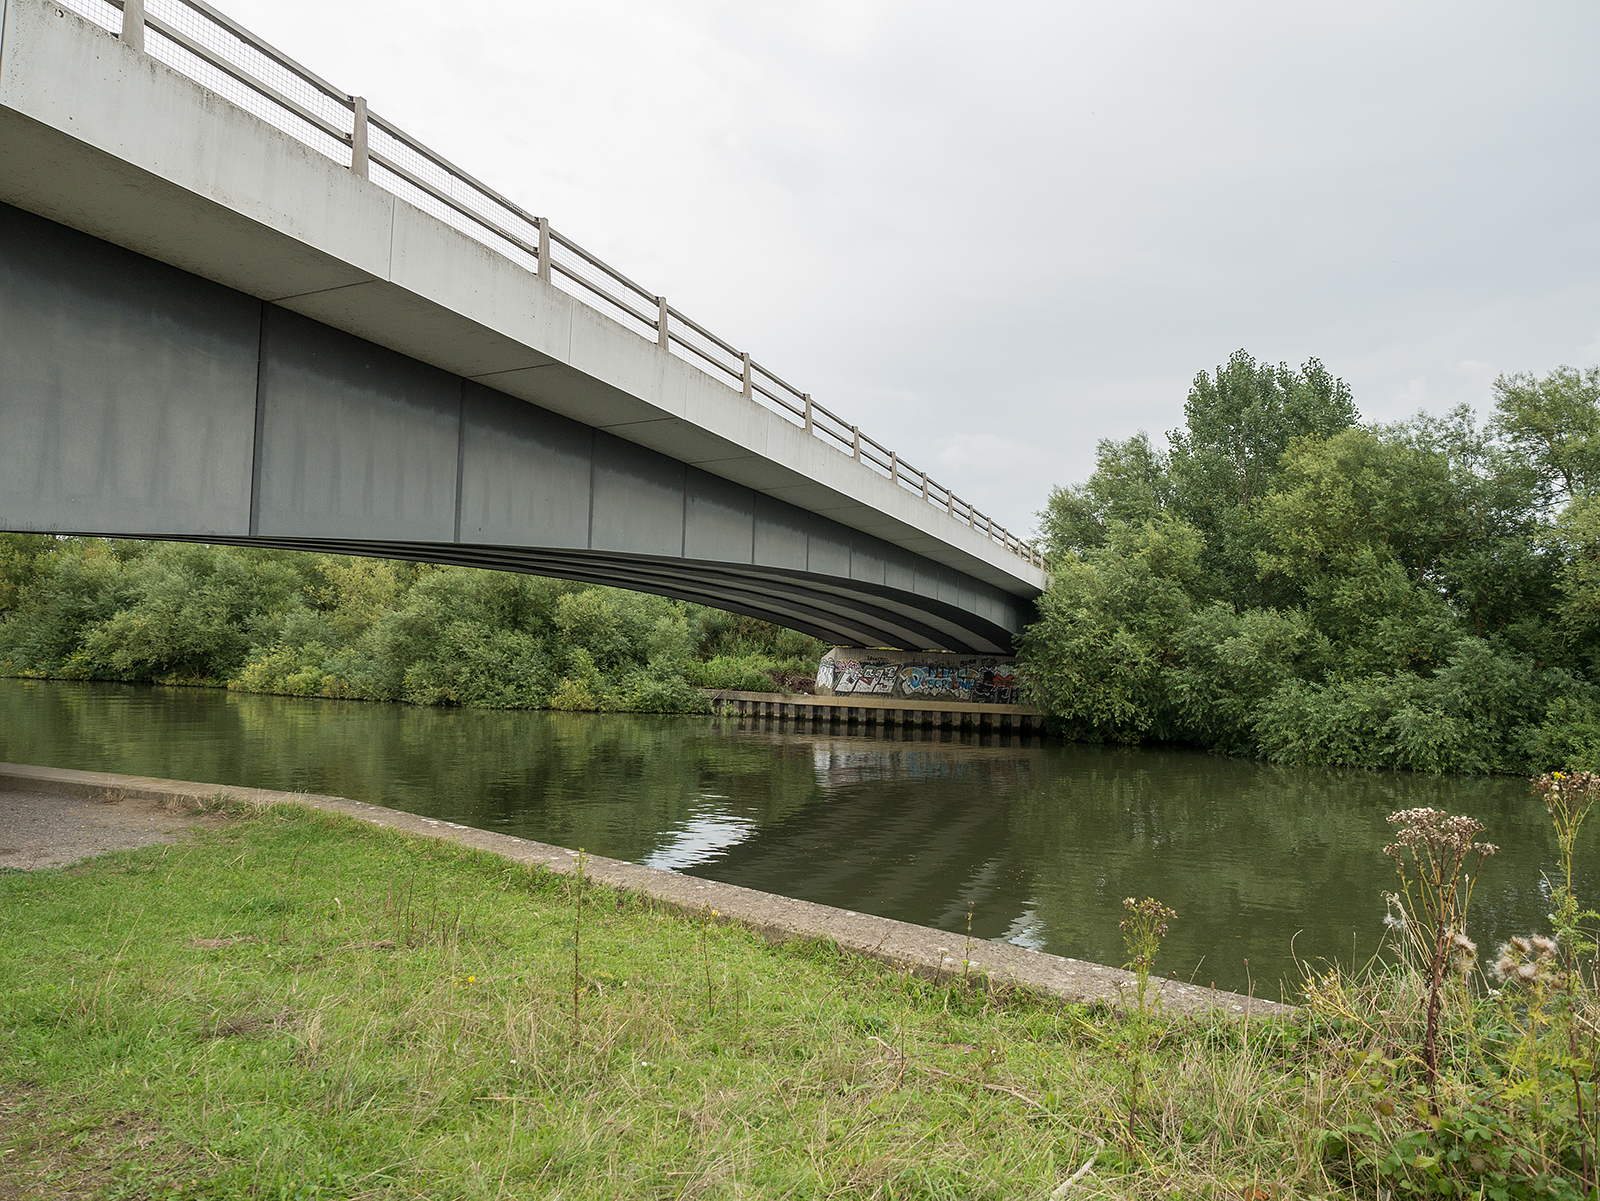 A4130 road bridge